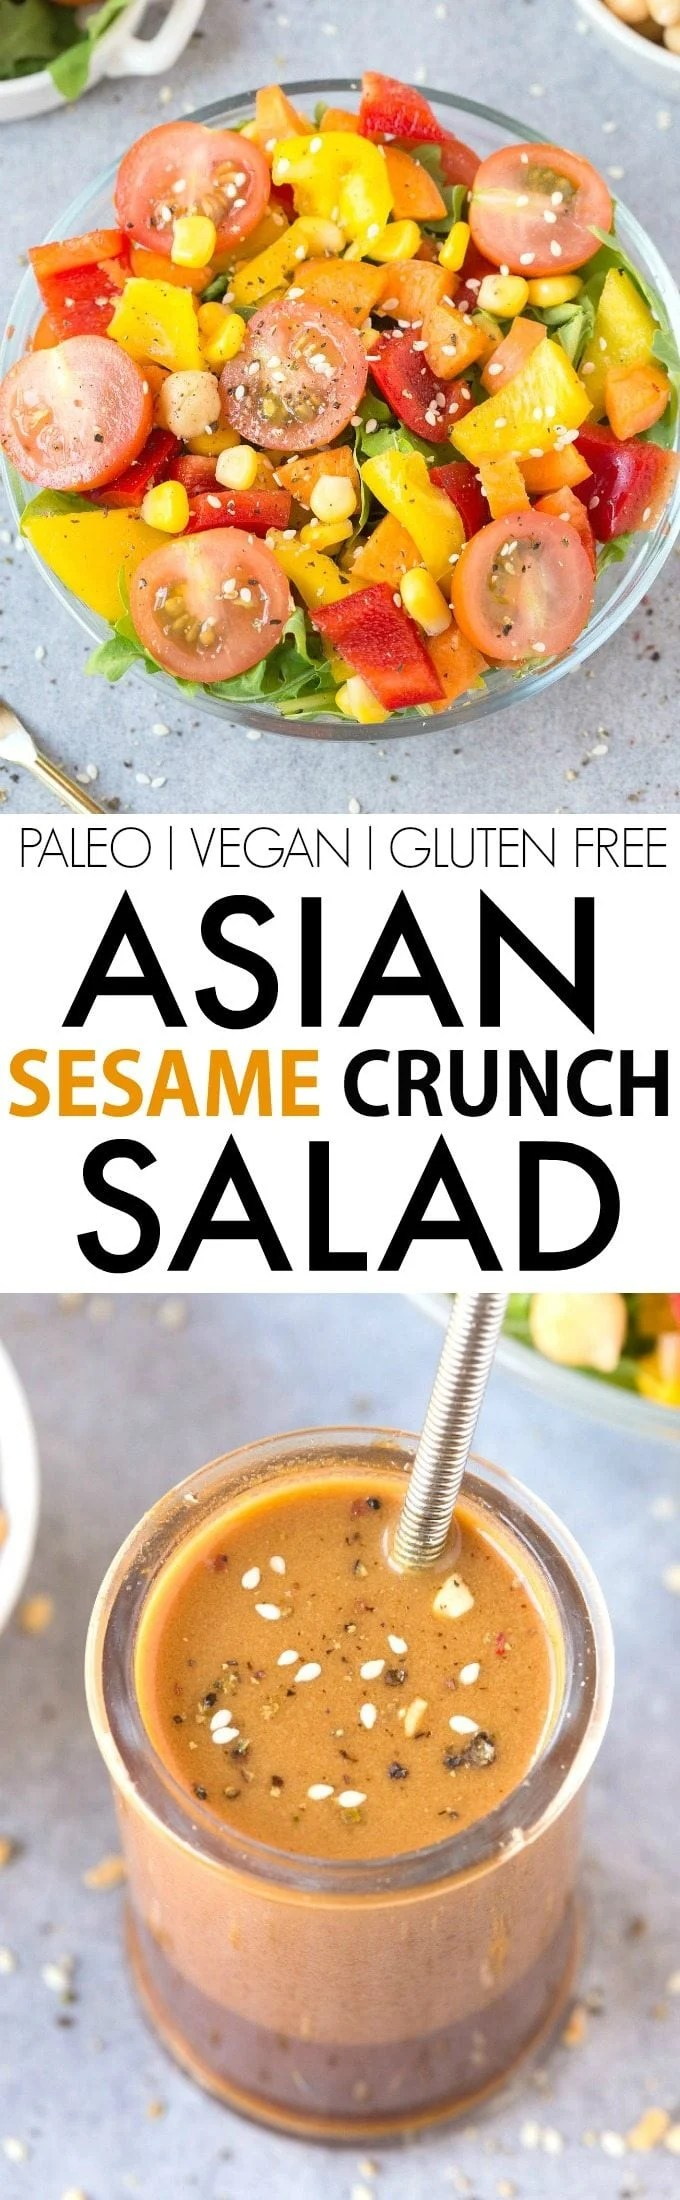 Healthy Asian Sesame Crunch Salad (V, GF, Paleo)- The BEST clean eating dressing ever, perfect to top on this texture perfect salad loaded with flavor! {vegan, gluten free, paleo, whole 30 recipe}- thebigmansworld.com